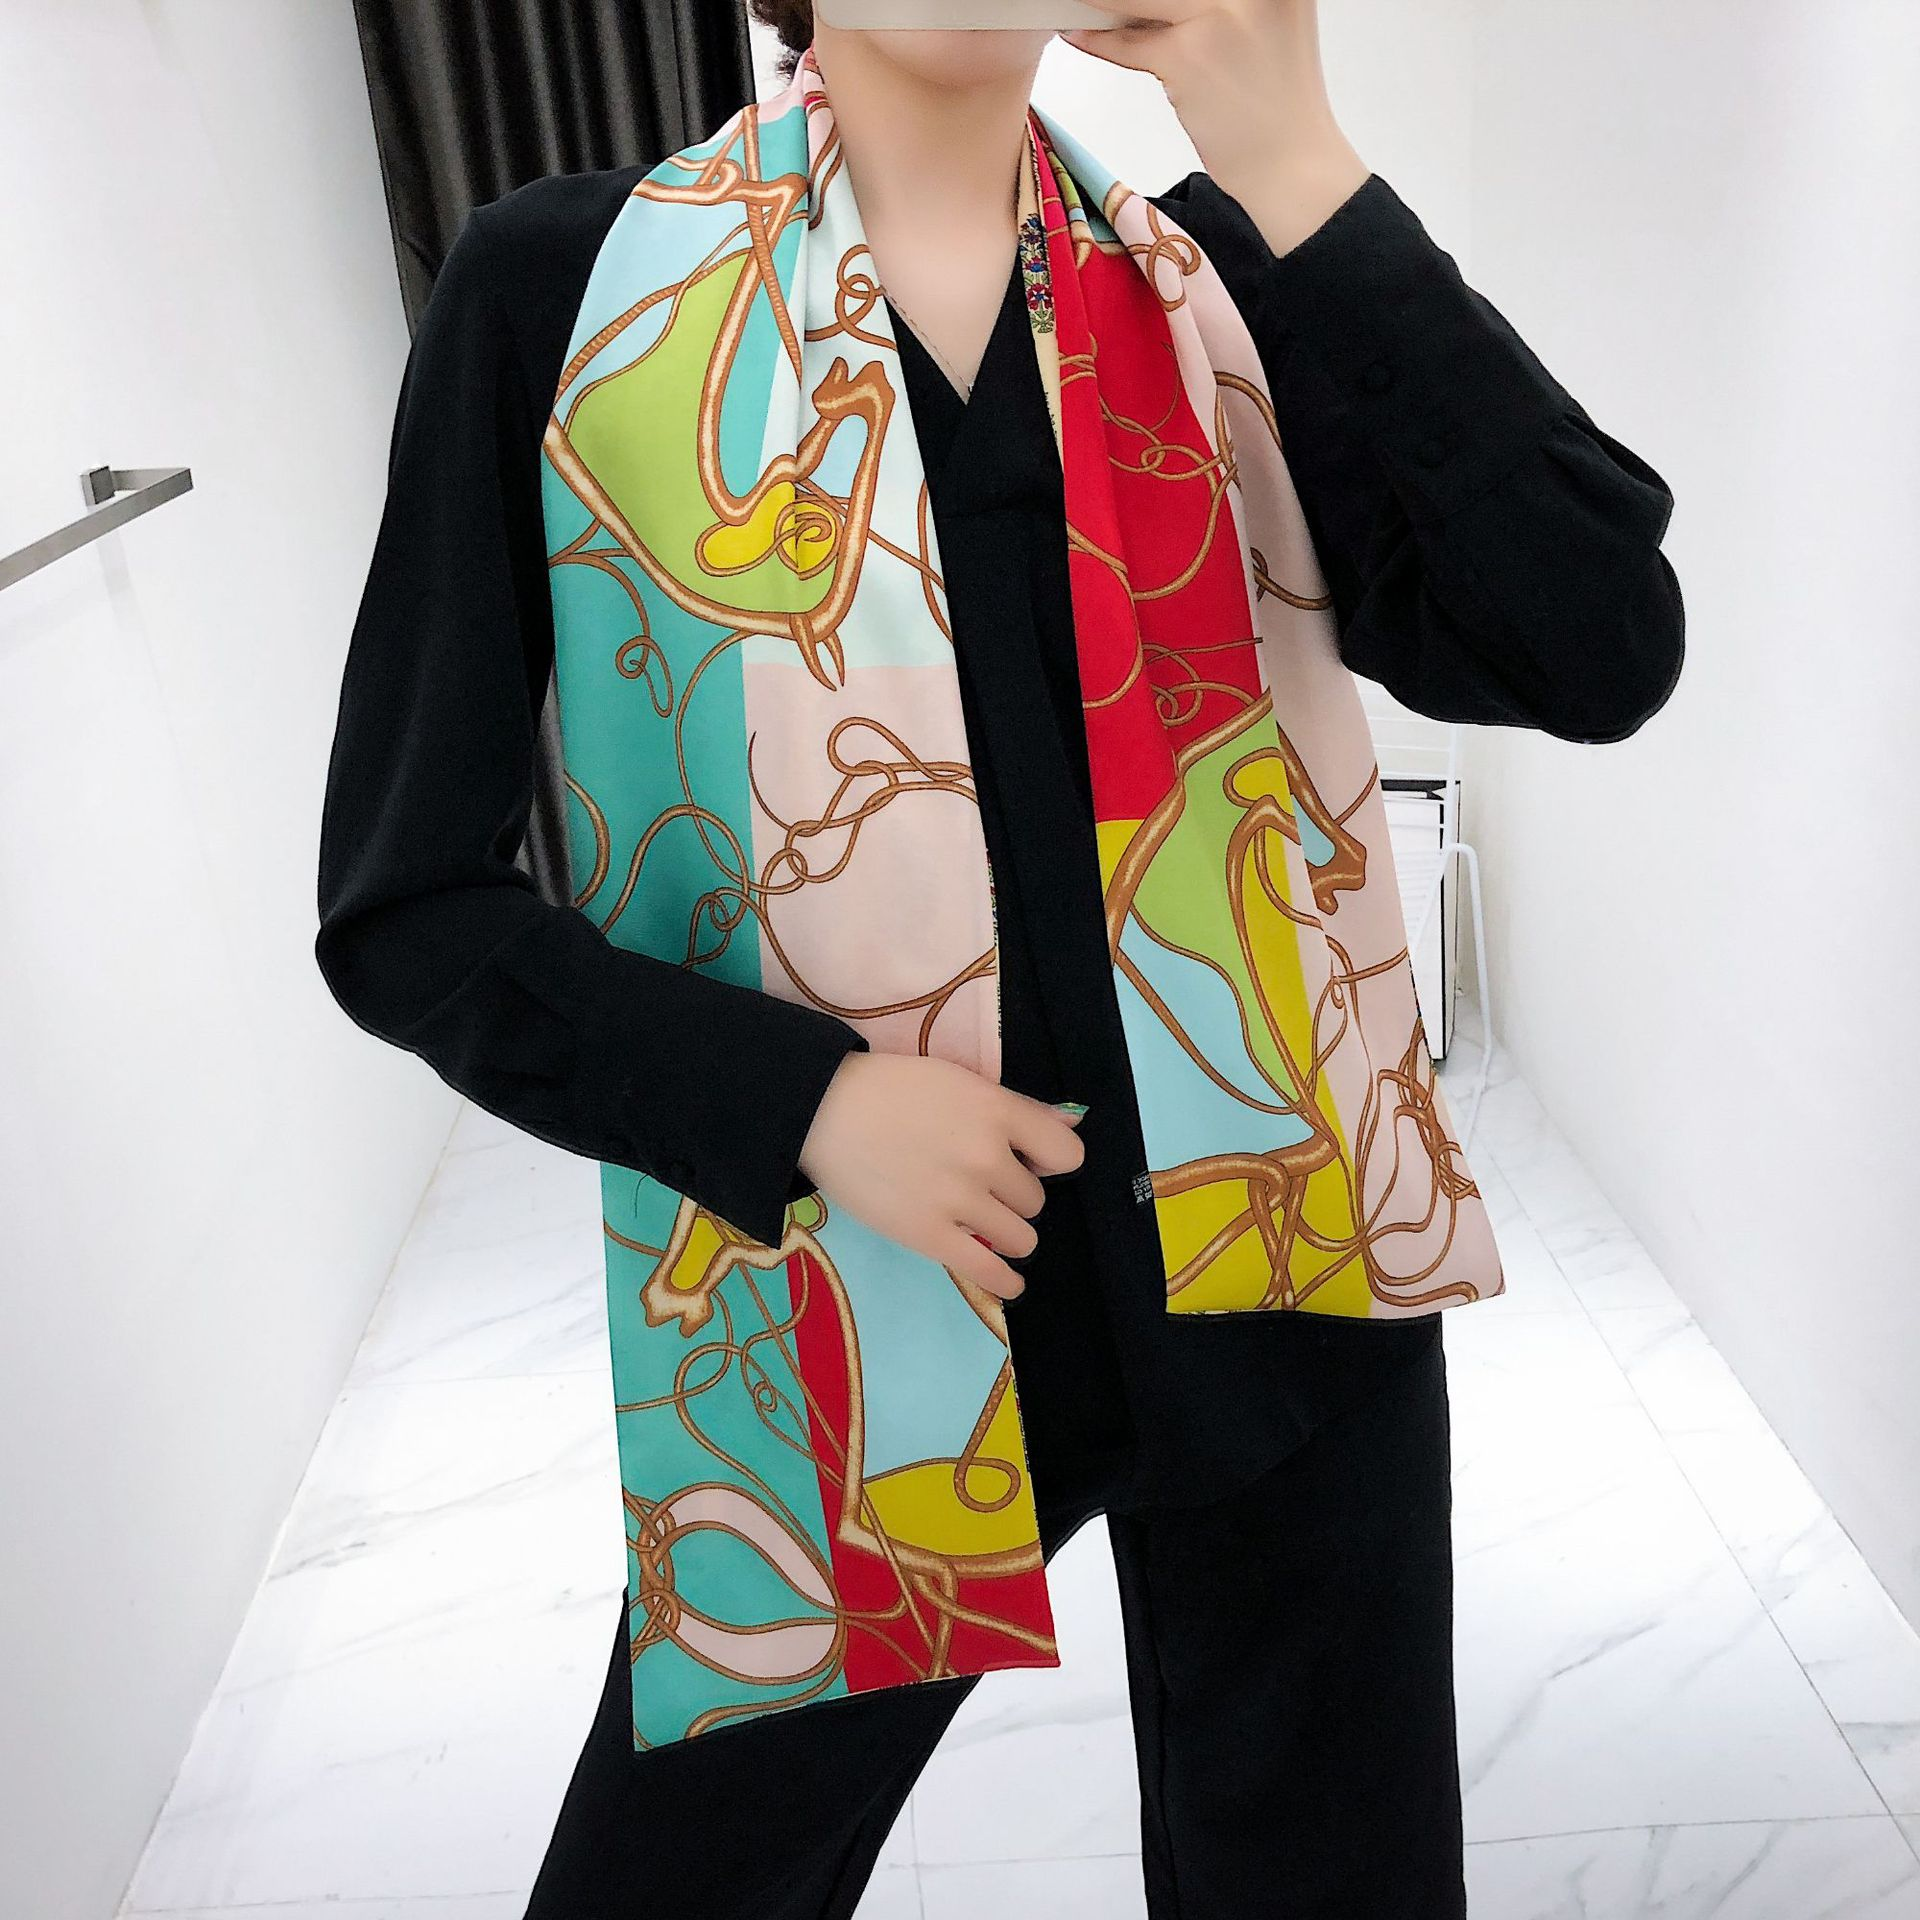 Astonishing Long Satin Scarf for Women's Pretty Fashion Accents